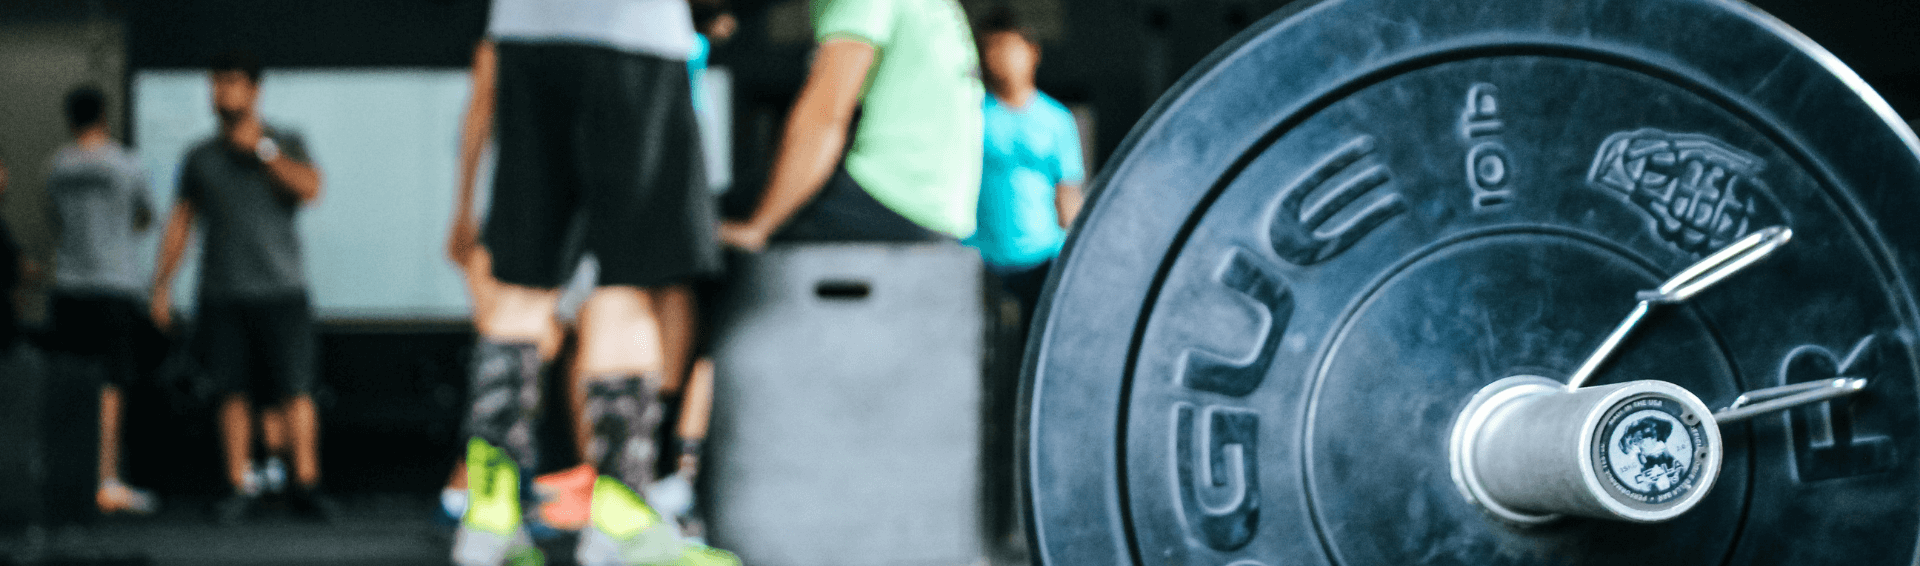 How Do You Get Your Personal Trainer Certification?